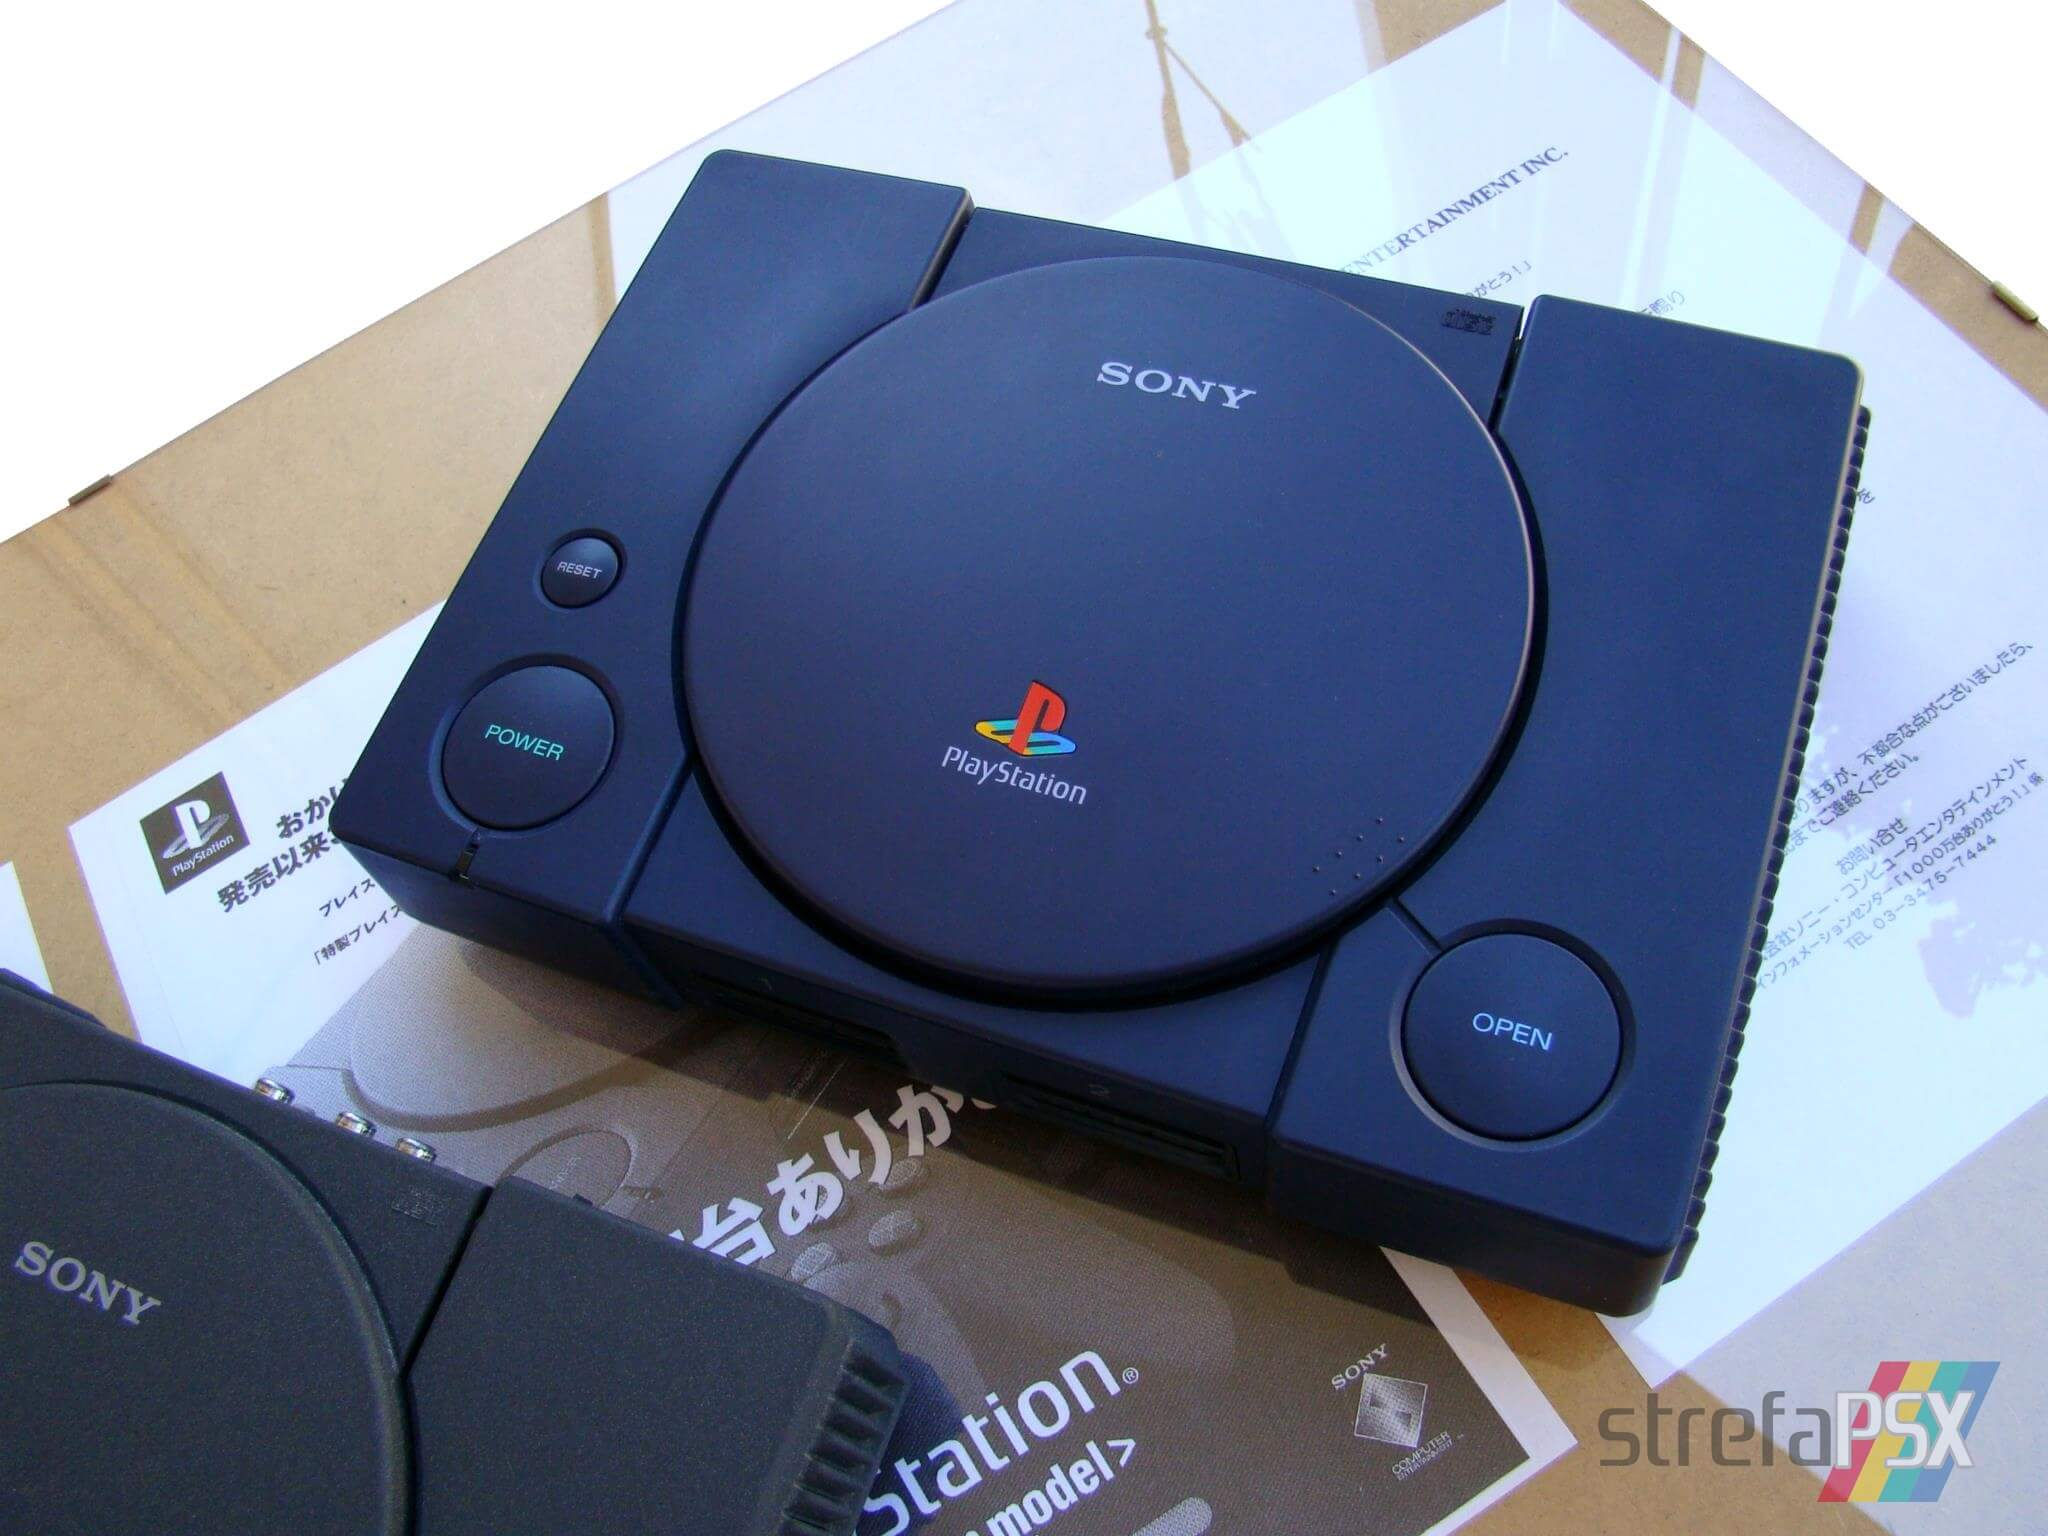 playstation 10 million model scph 700010 - [SCPH-700x] PlayStation 10 Million Model